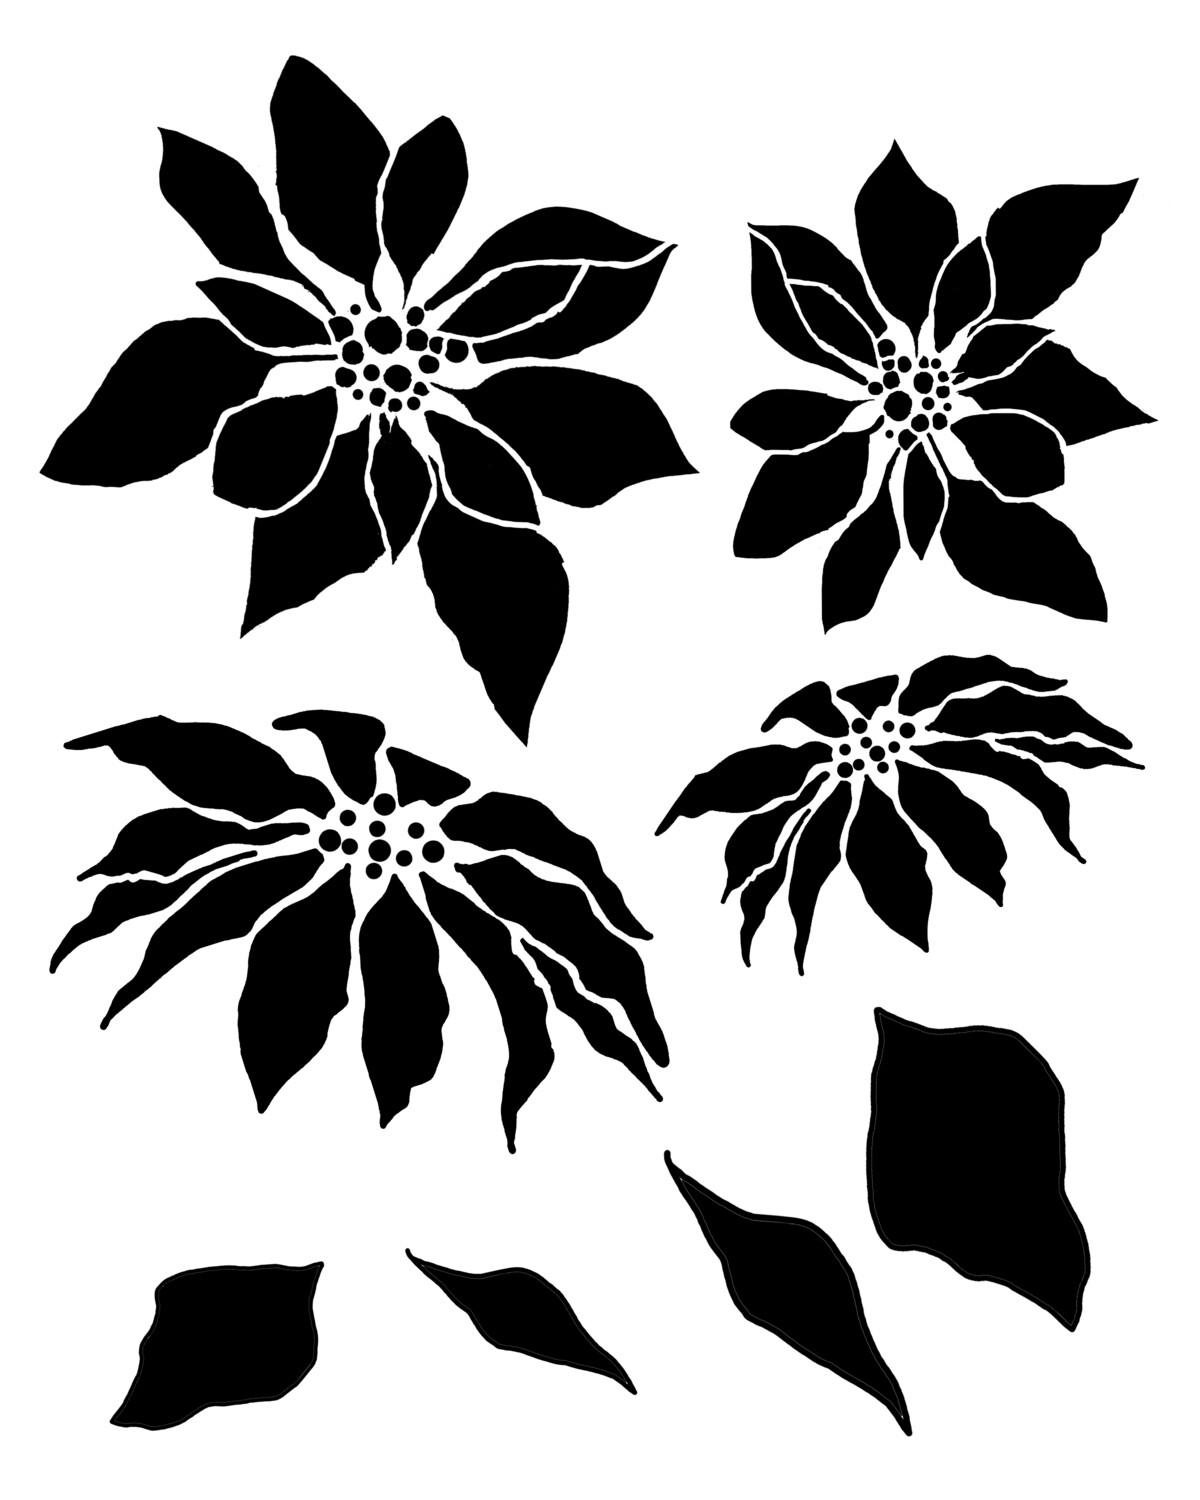 Poinsettia and Leaves 12x16 stencil